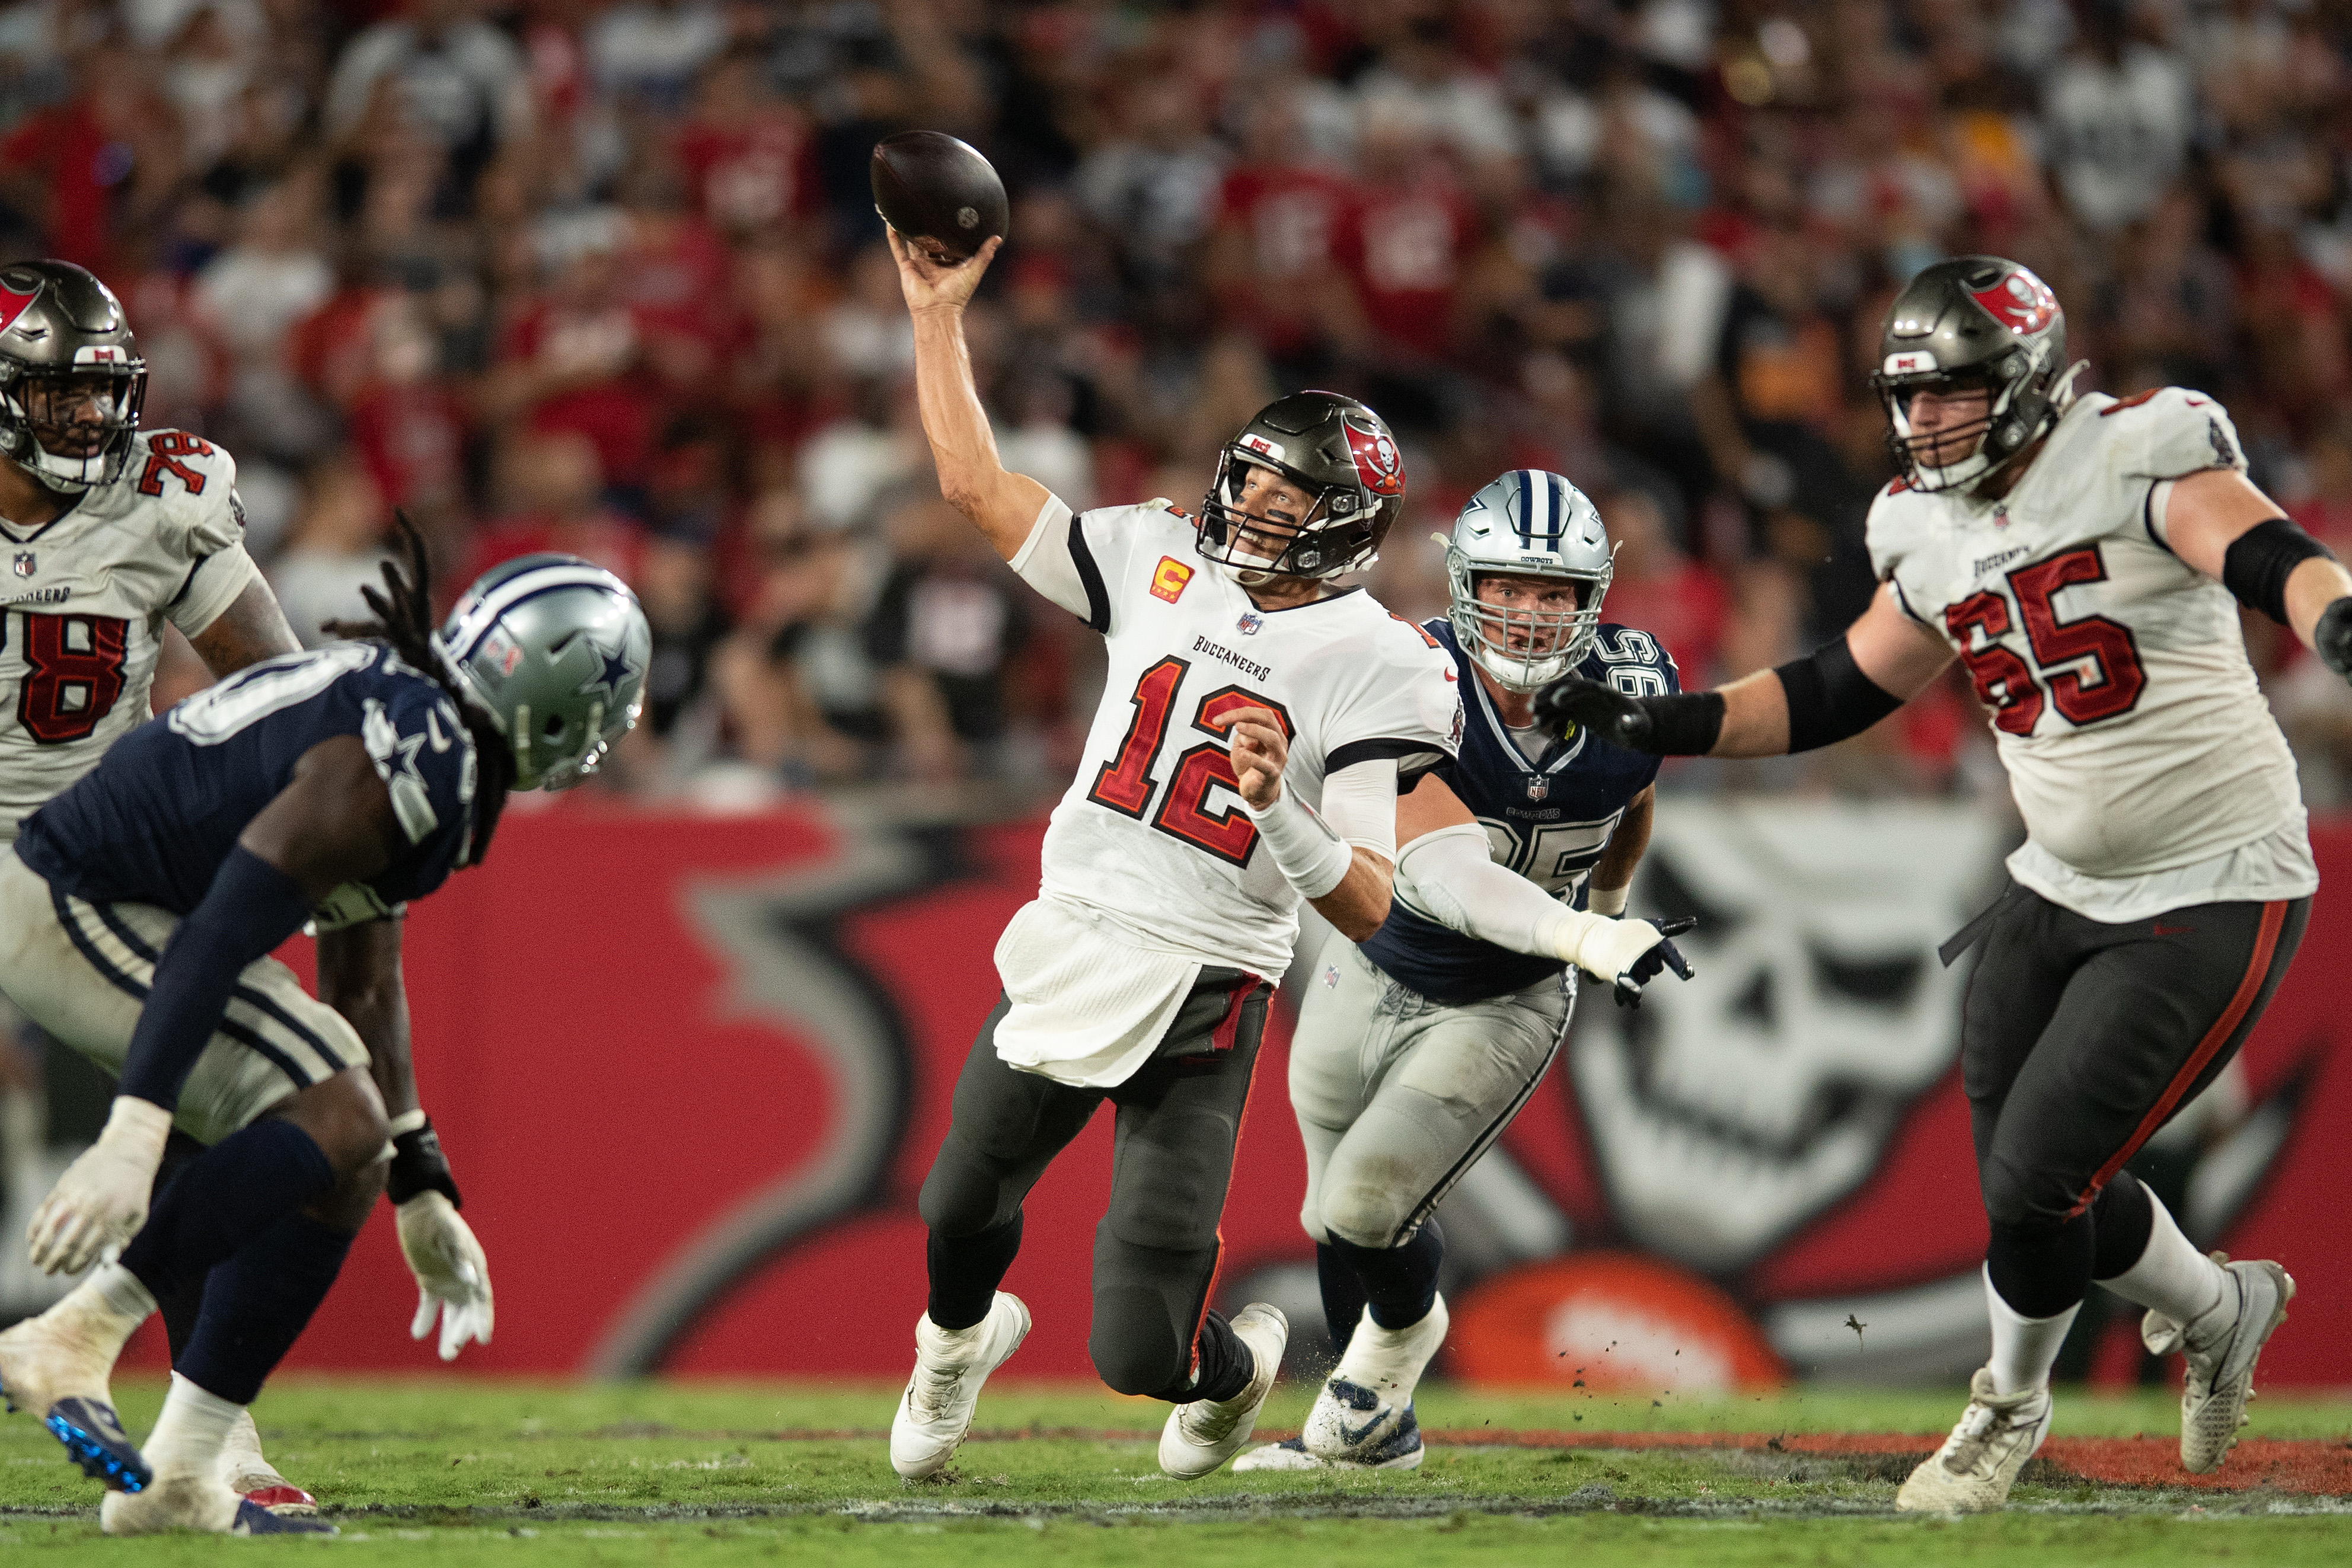 Tampa Bay Buccaneers quarterback Tom Brady (12) throws the ball against the Dallas Cowboys in the fourth quarter at Raymond James Stadium.